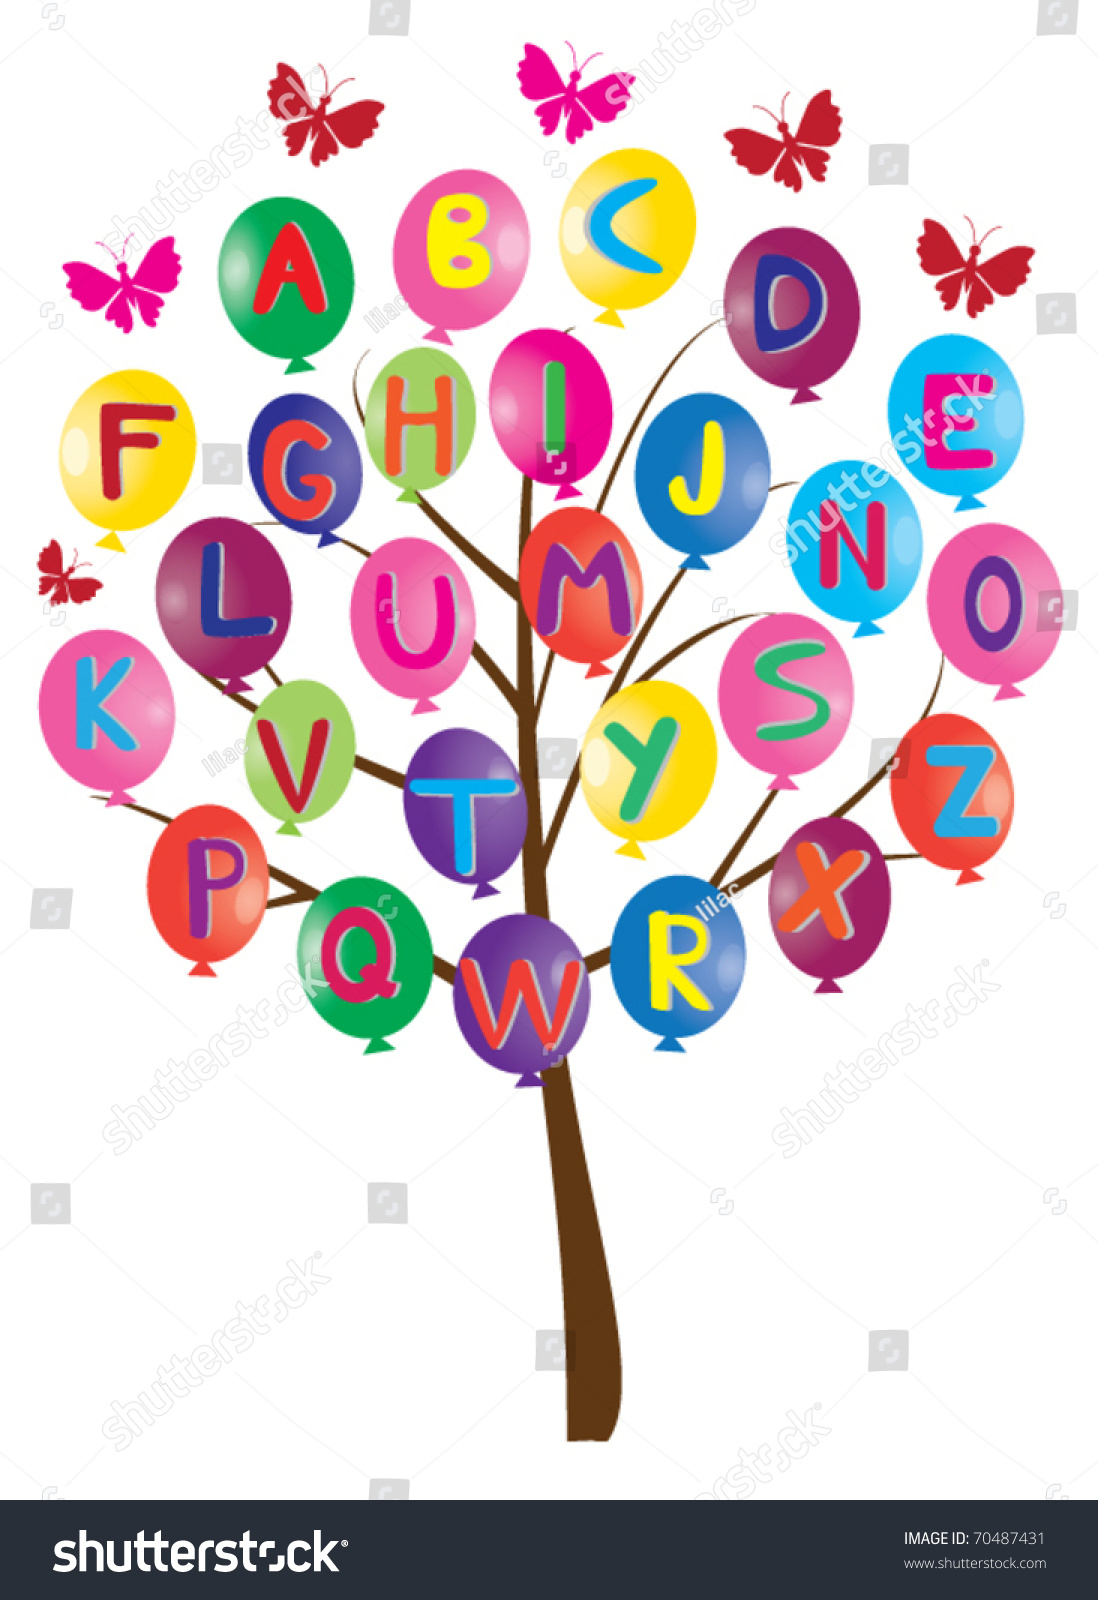 Vector Alphabet Tree Letters Balloons Stock.